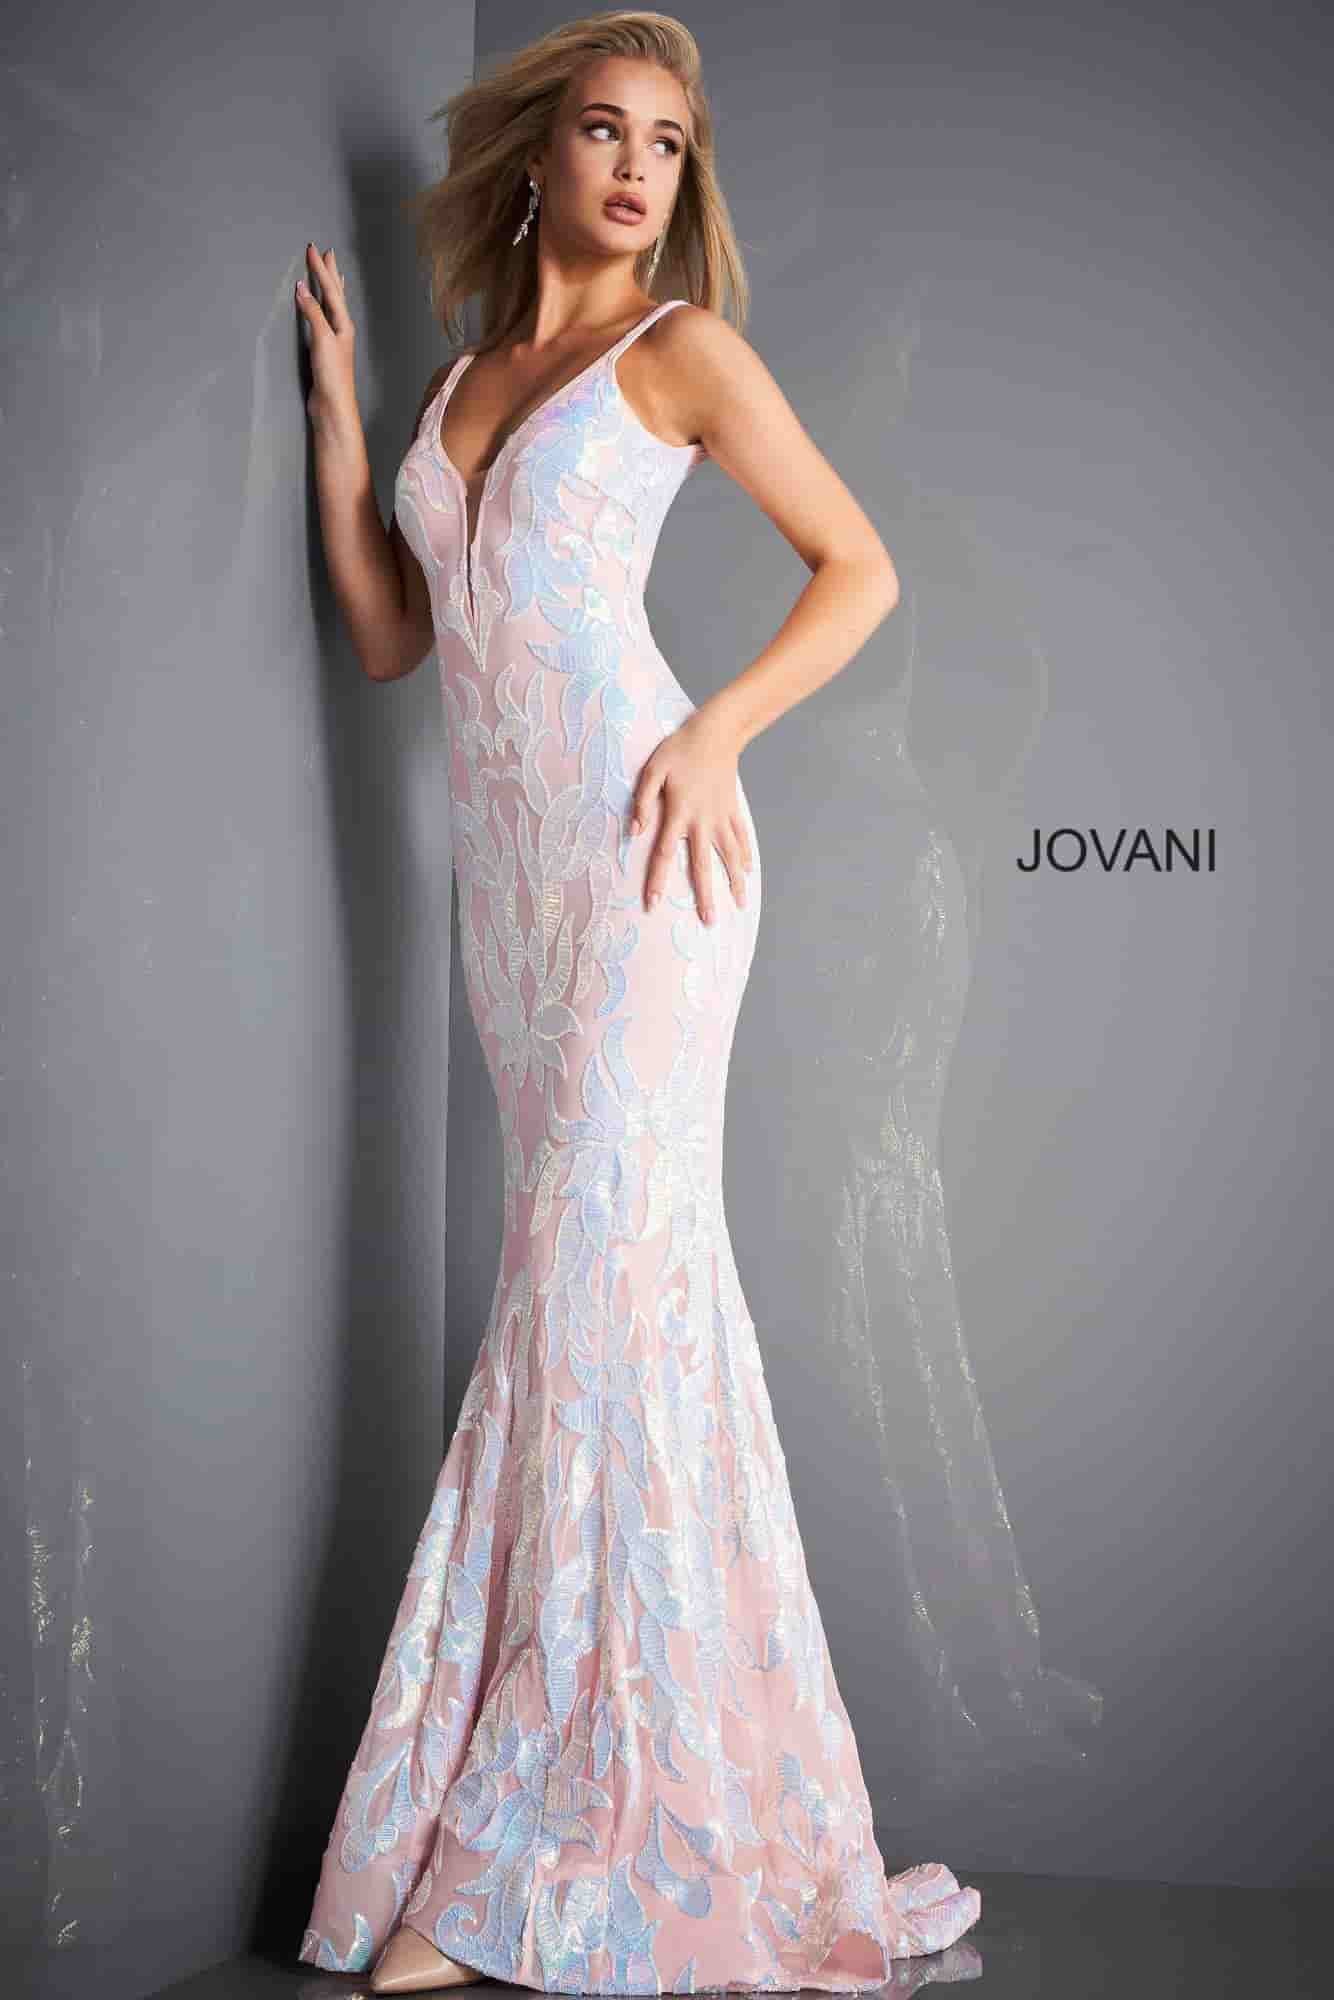 Style 3263 Jovani Pink Size 6 Pageant Backless Tall Height Mermaid Dress on Queenly